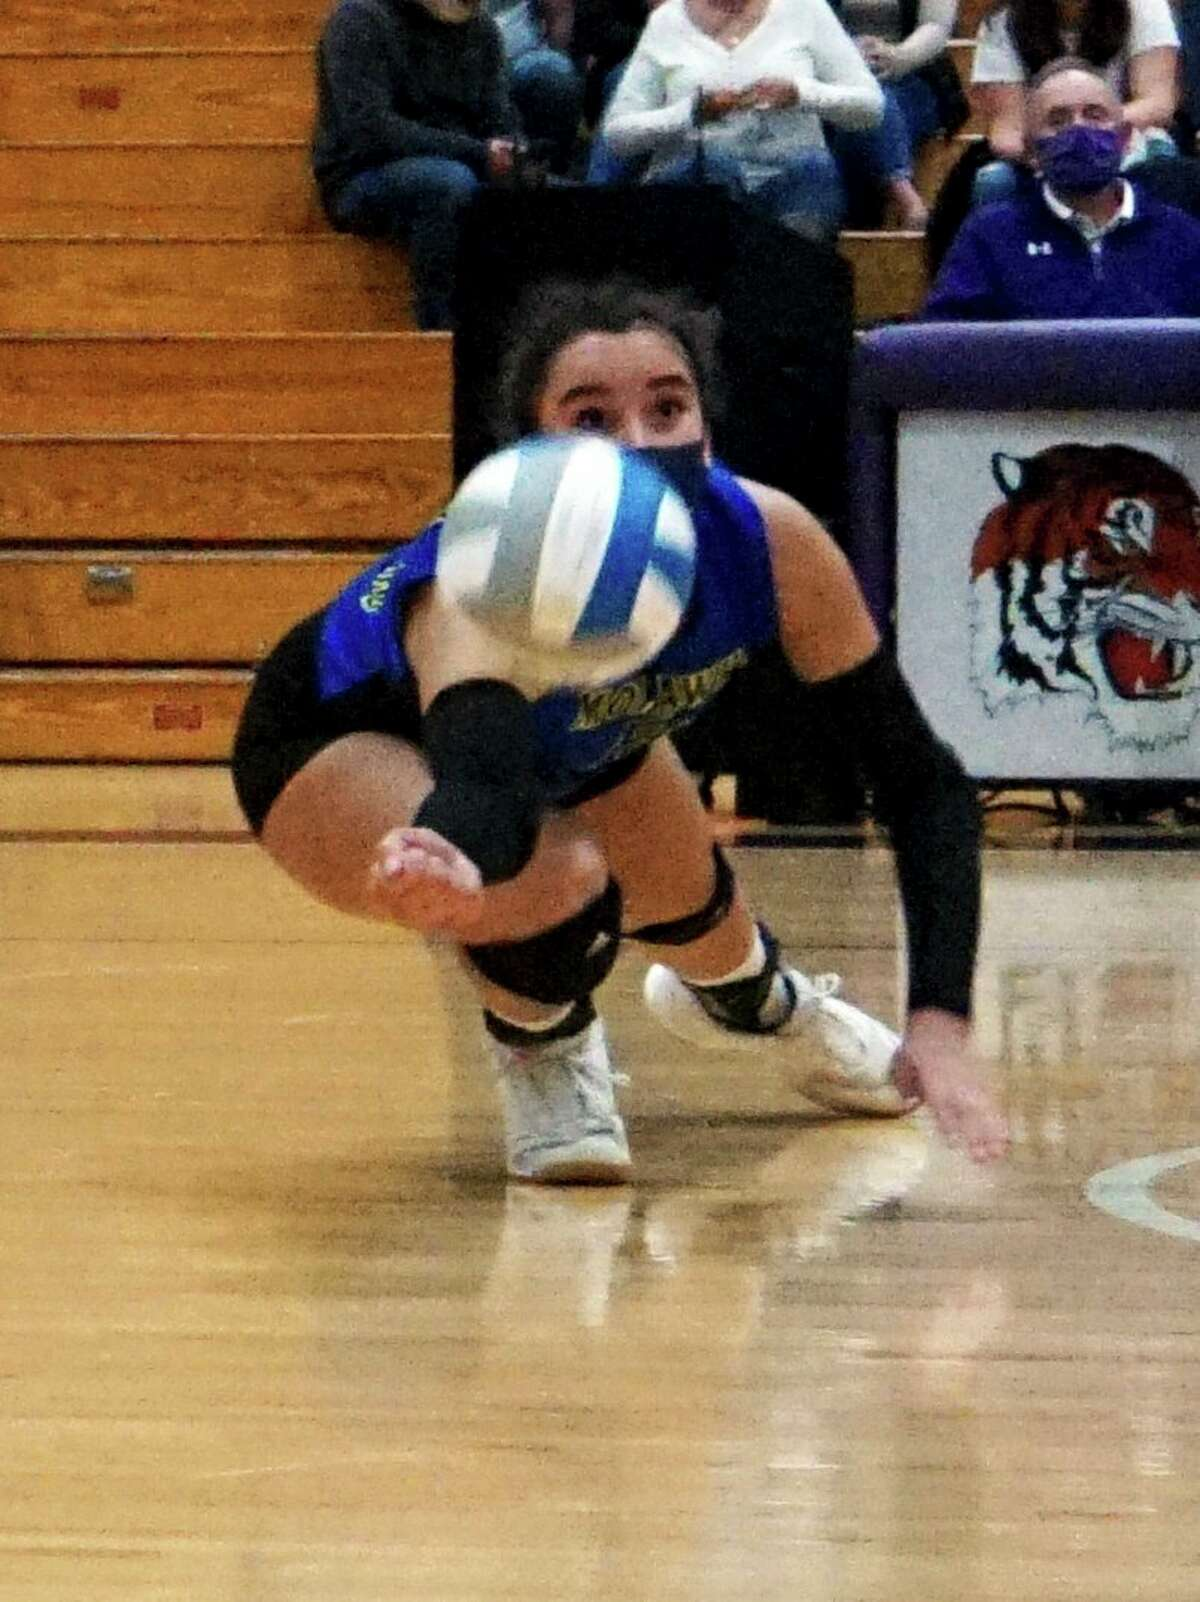 Junior Braelyn Berry, of Morley Stanwood, reaches low to get a ball during a match this season. (Pioneer file photo)